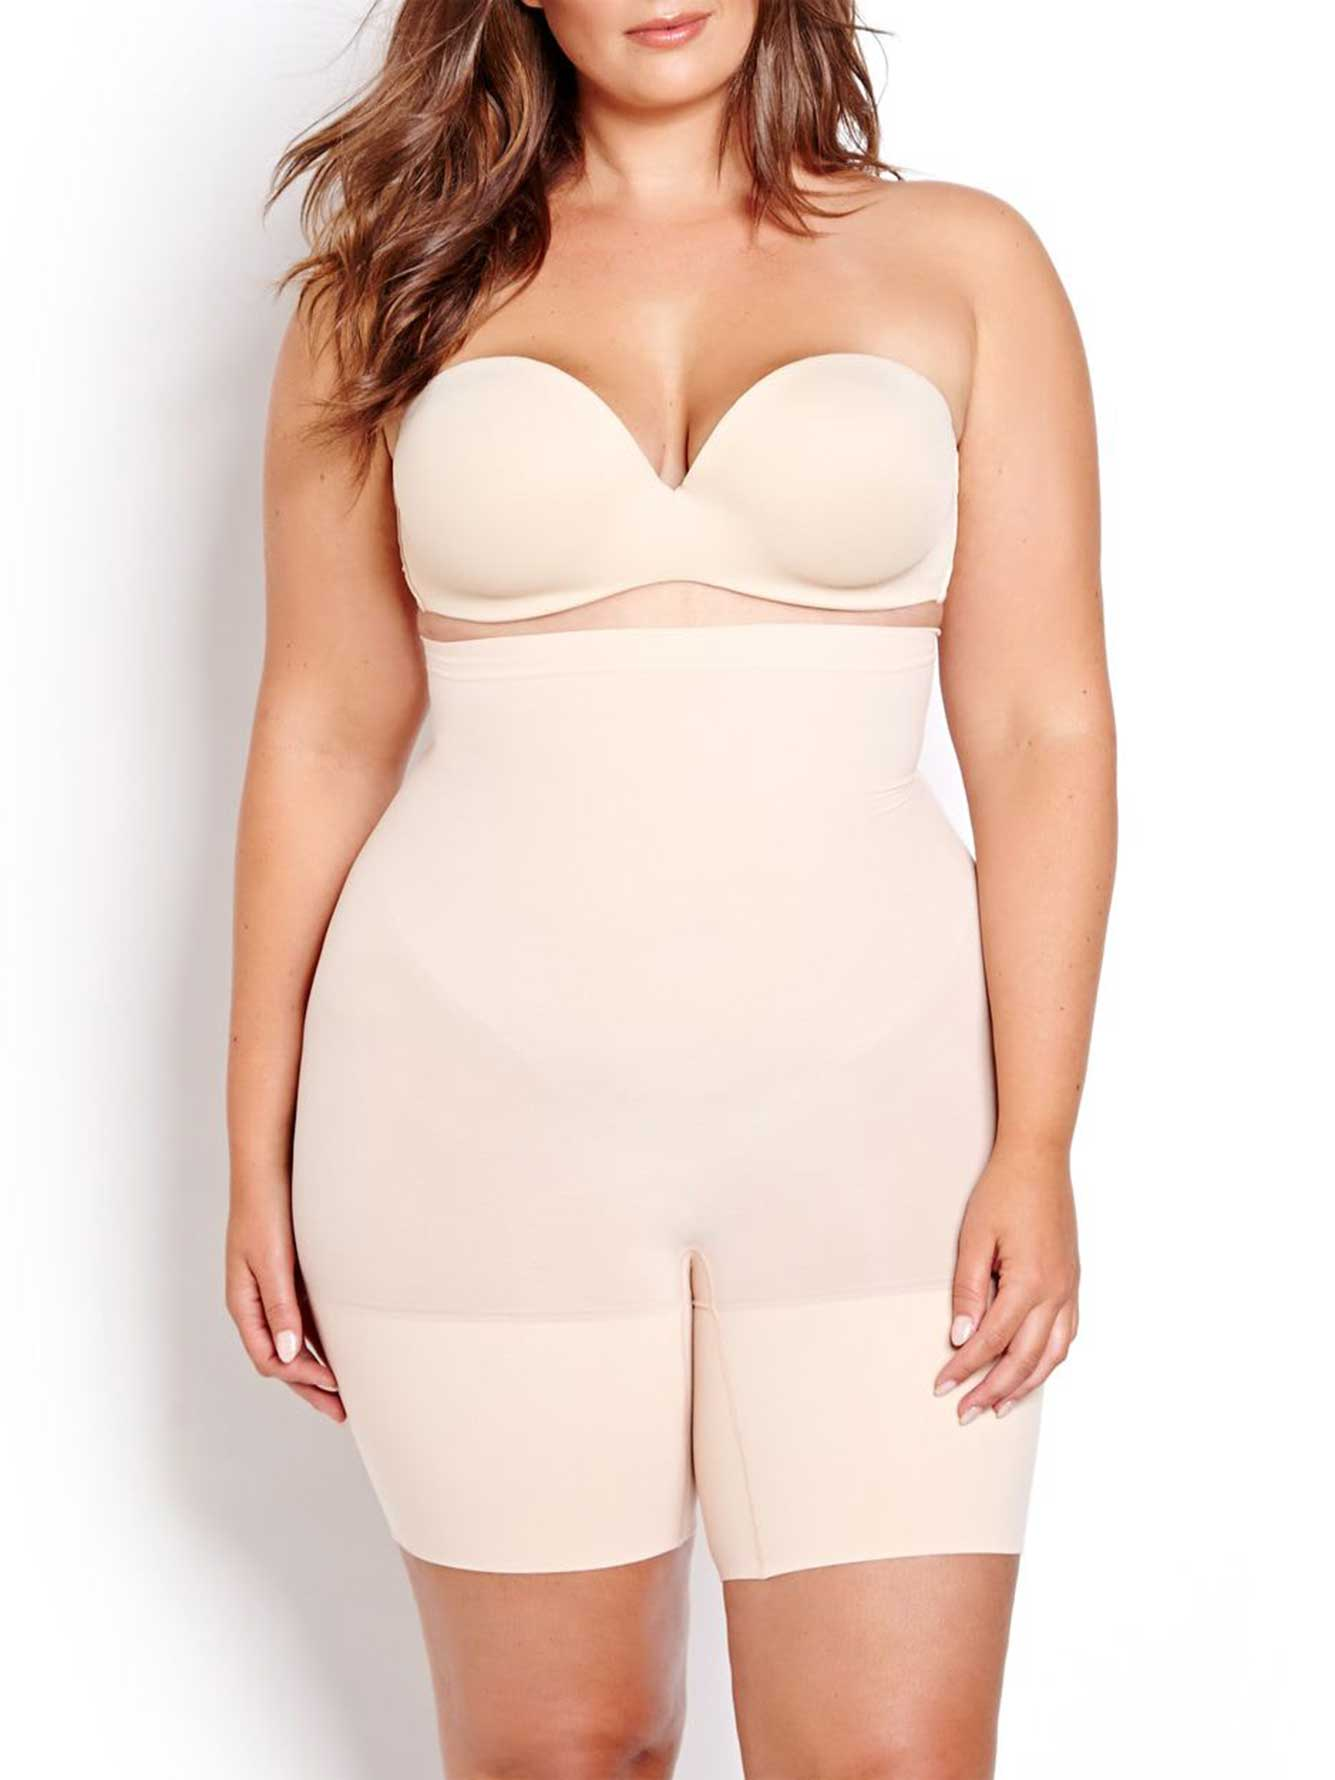 Spanx is a line of undergarments that are designed to give you a more slender look and shape your body. They do this with an assortment of products including bras, panties, leg wear, swimsuits, and body shapers. This is just one of sevearl different companies that have gained in popularity in recent years with products designed to compress and smooth out problem areas.